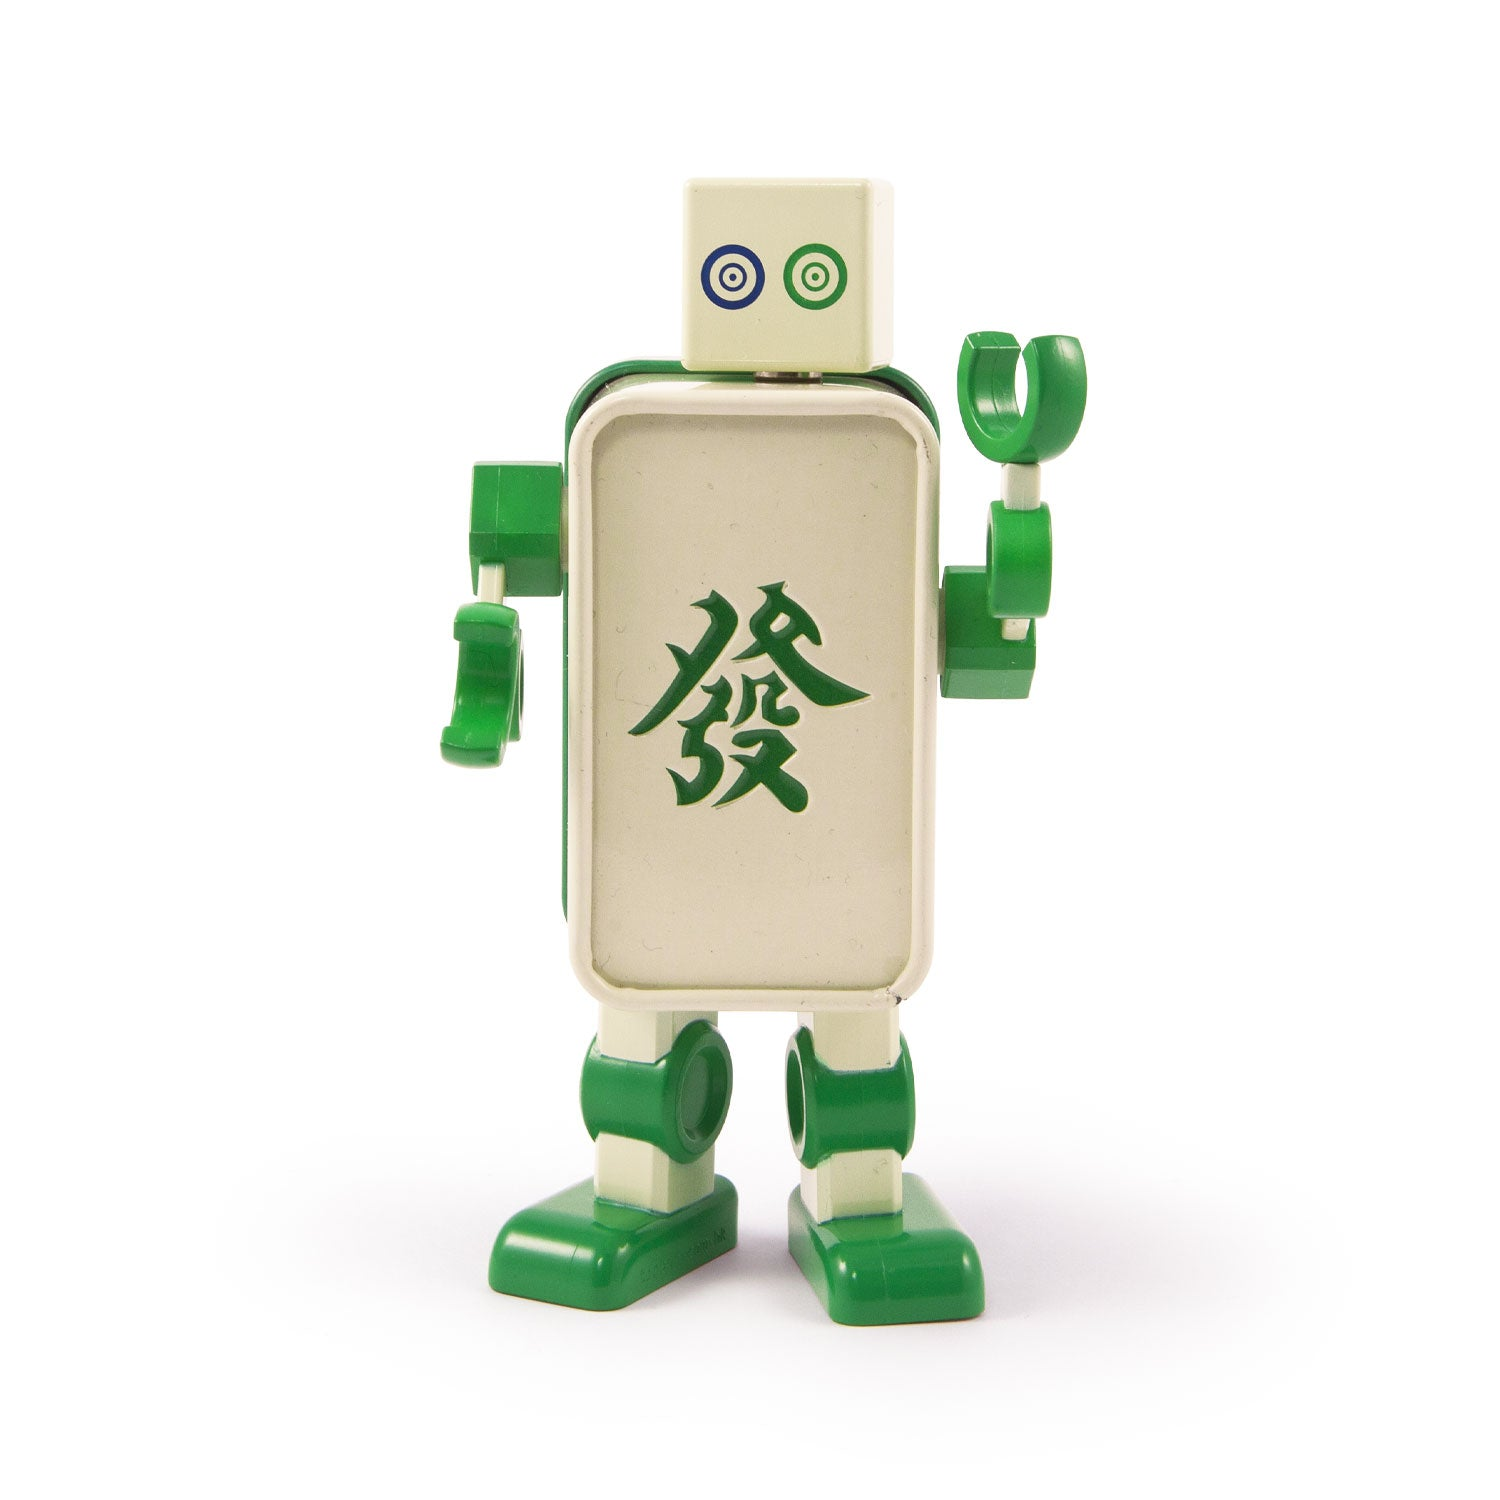 'Mahjong' Collectible Robot